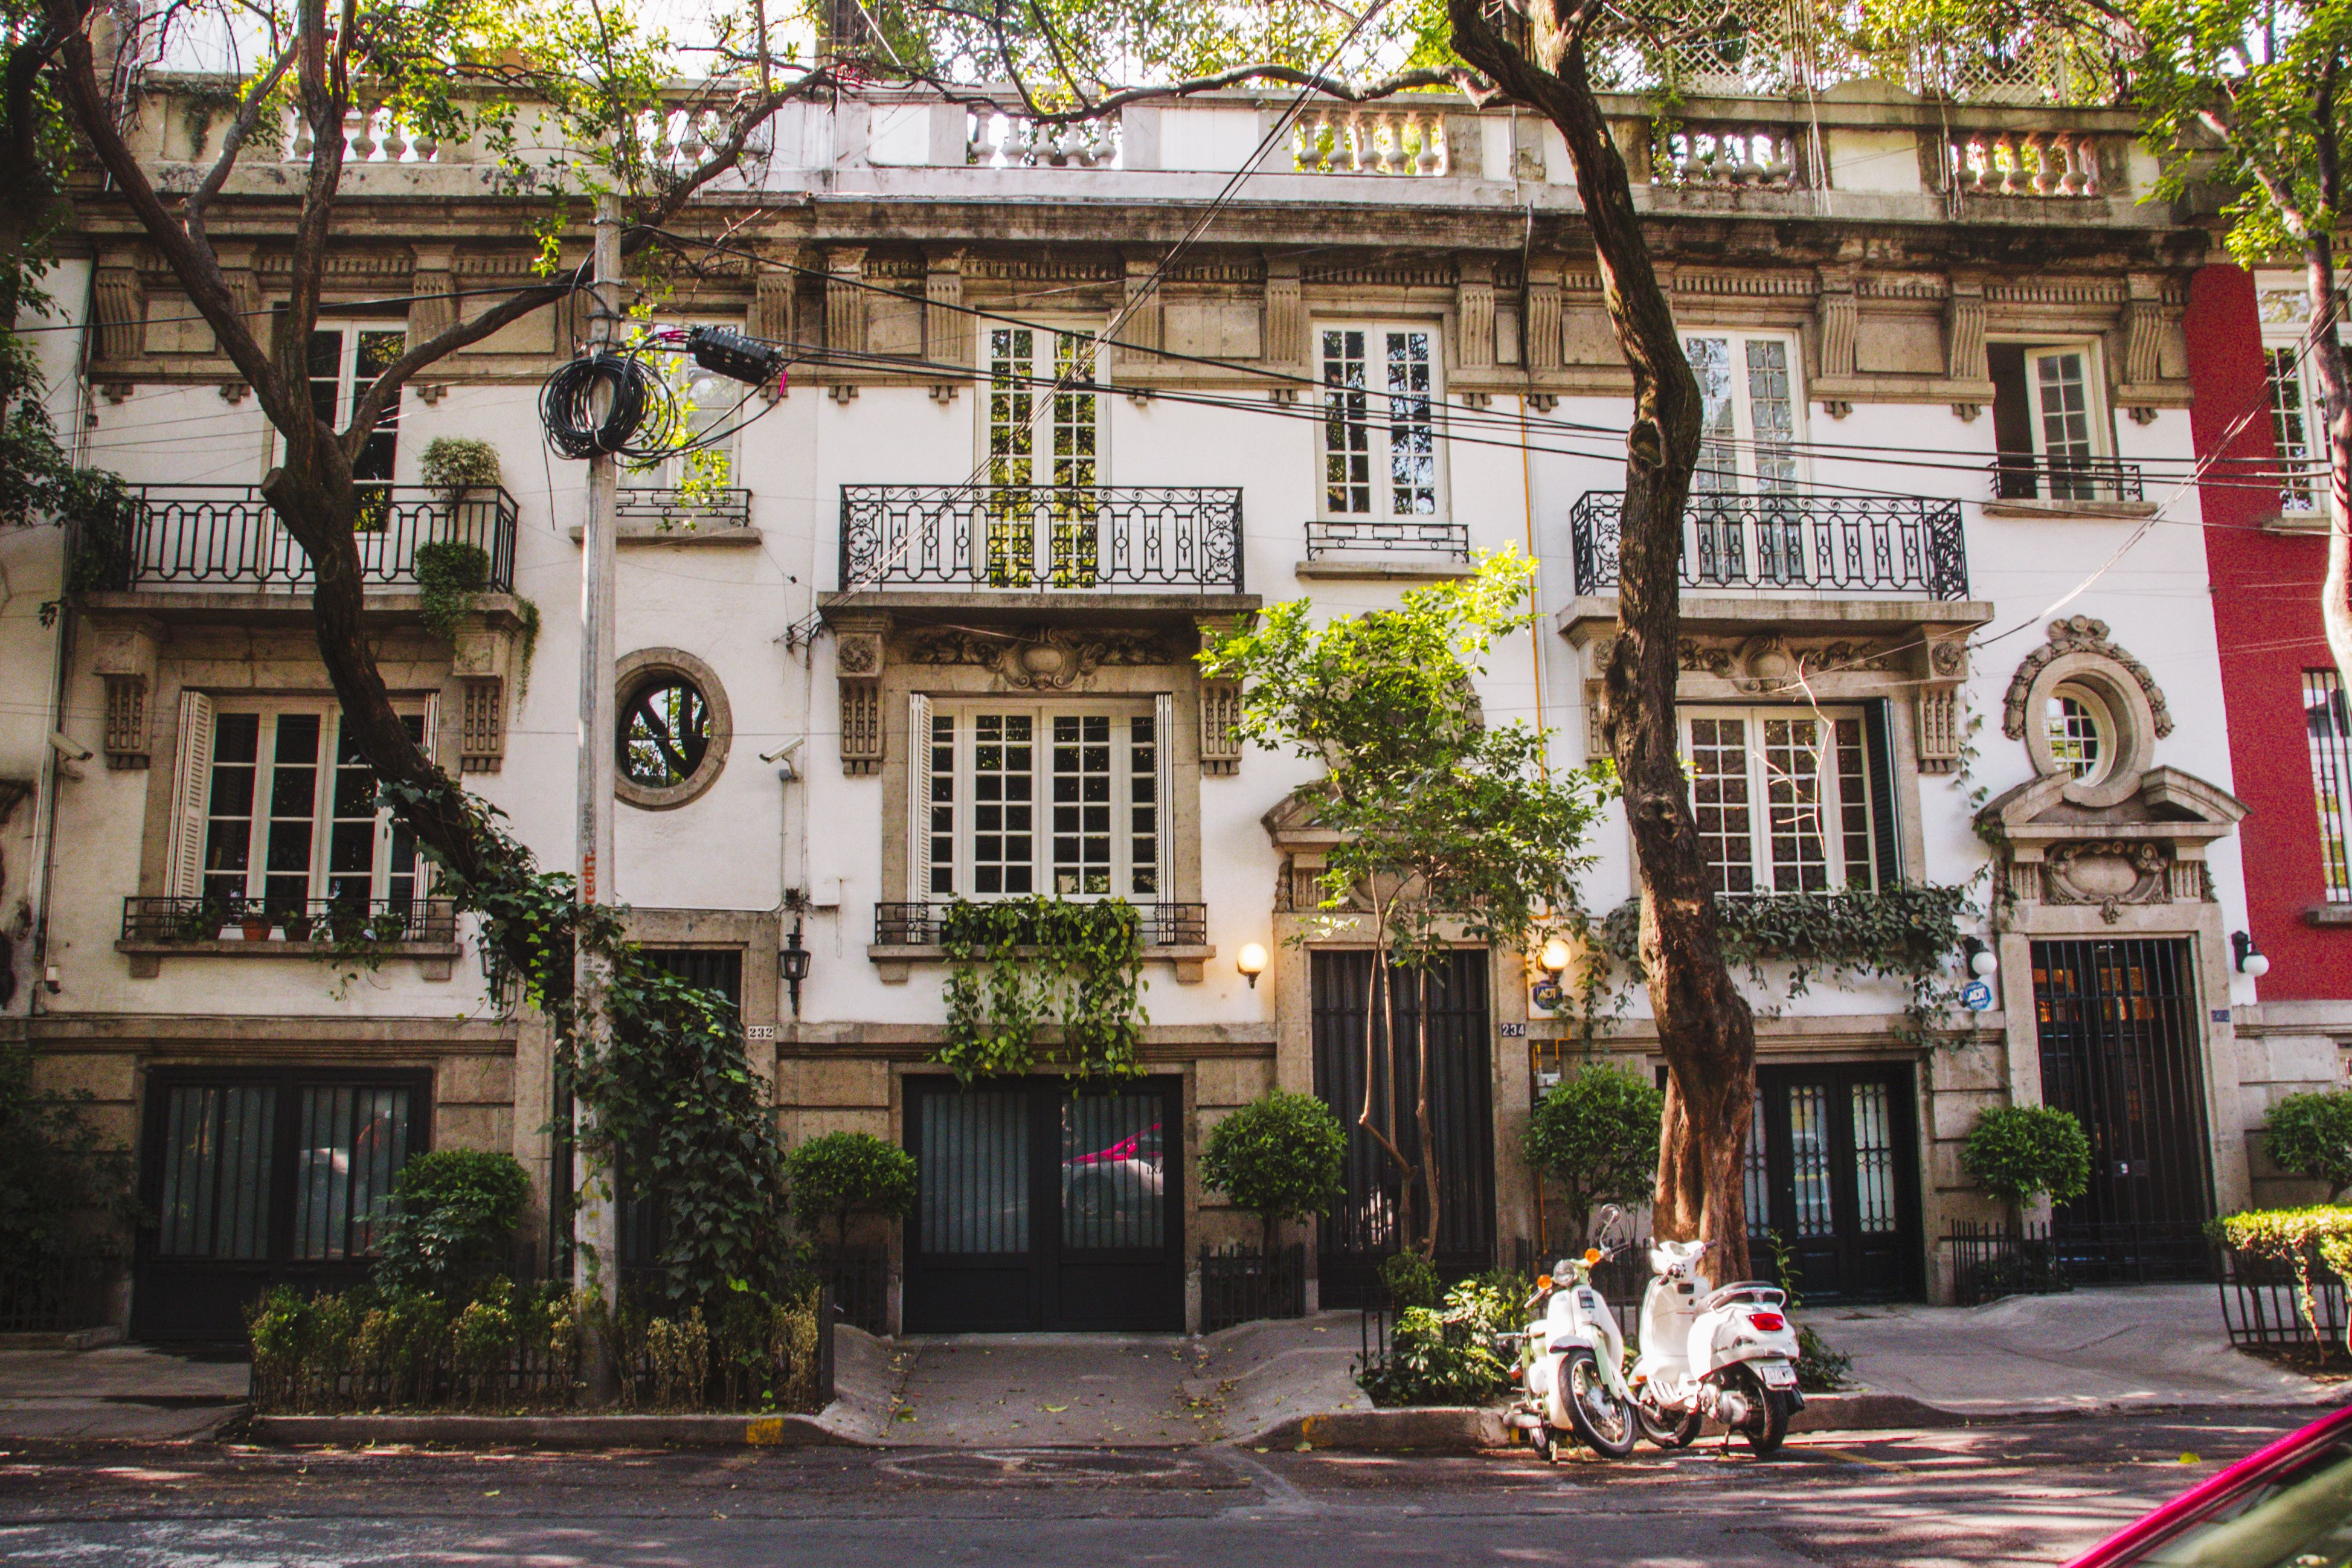 An old colonial building covered in green plants